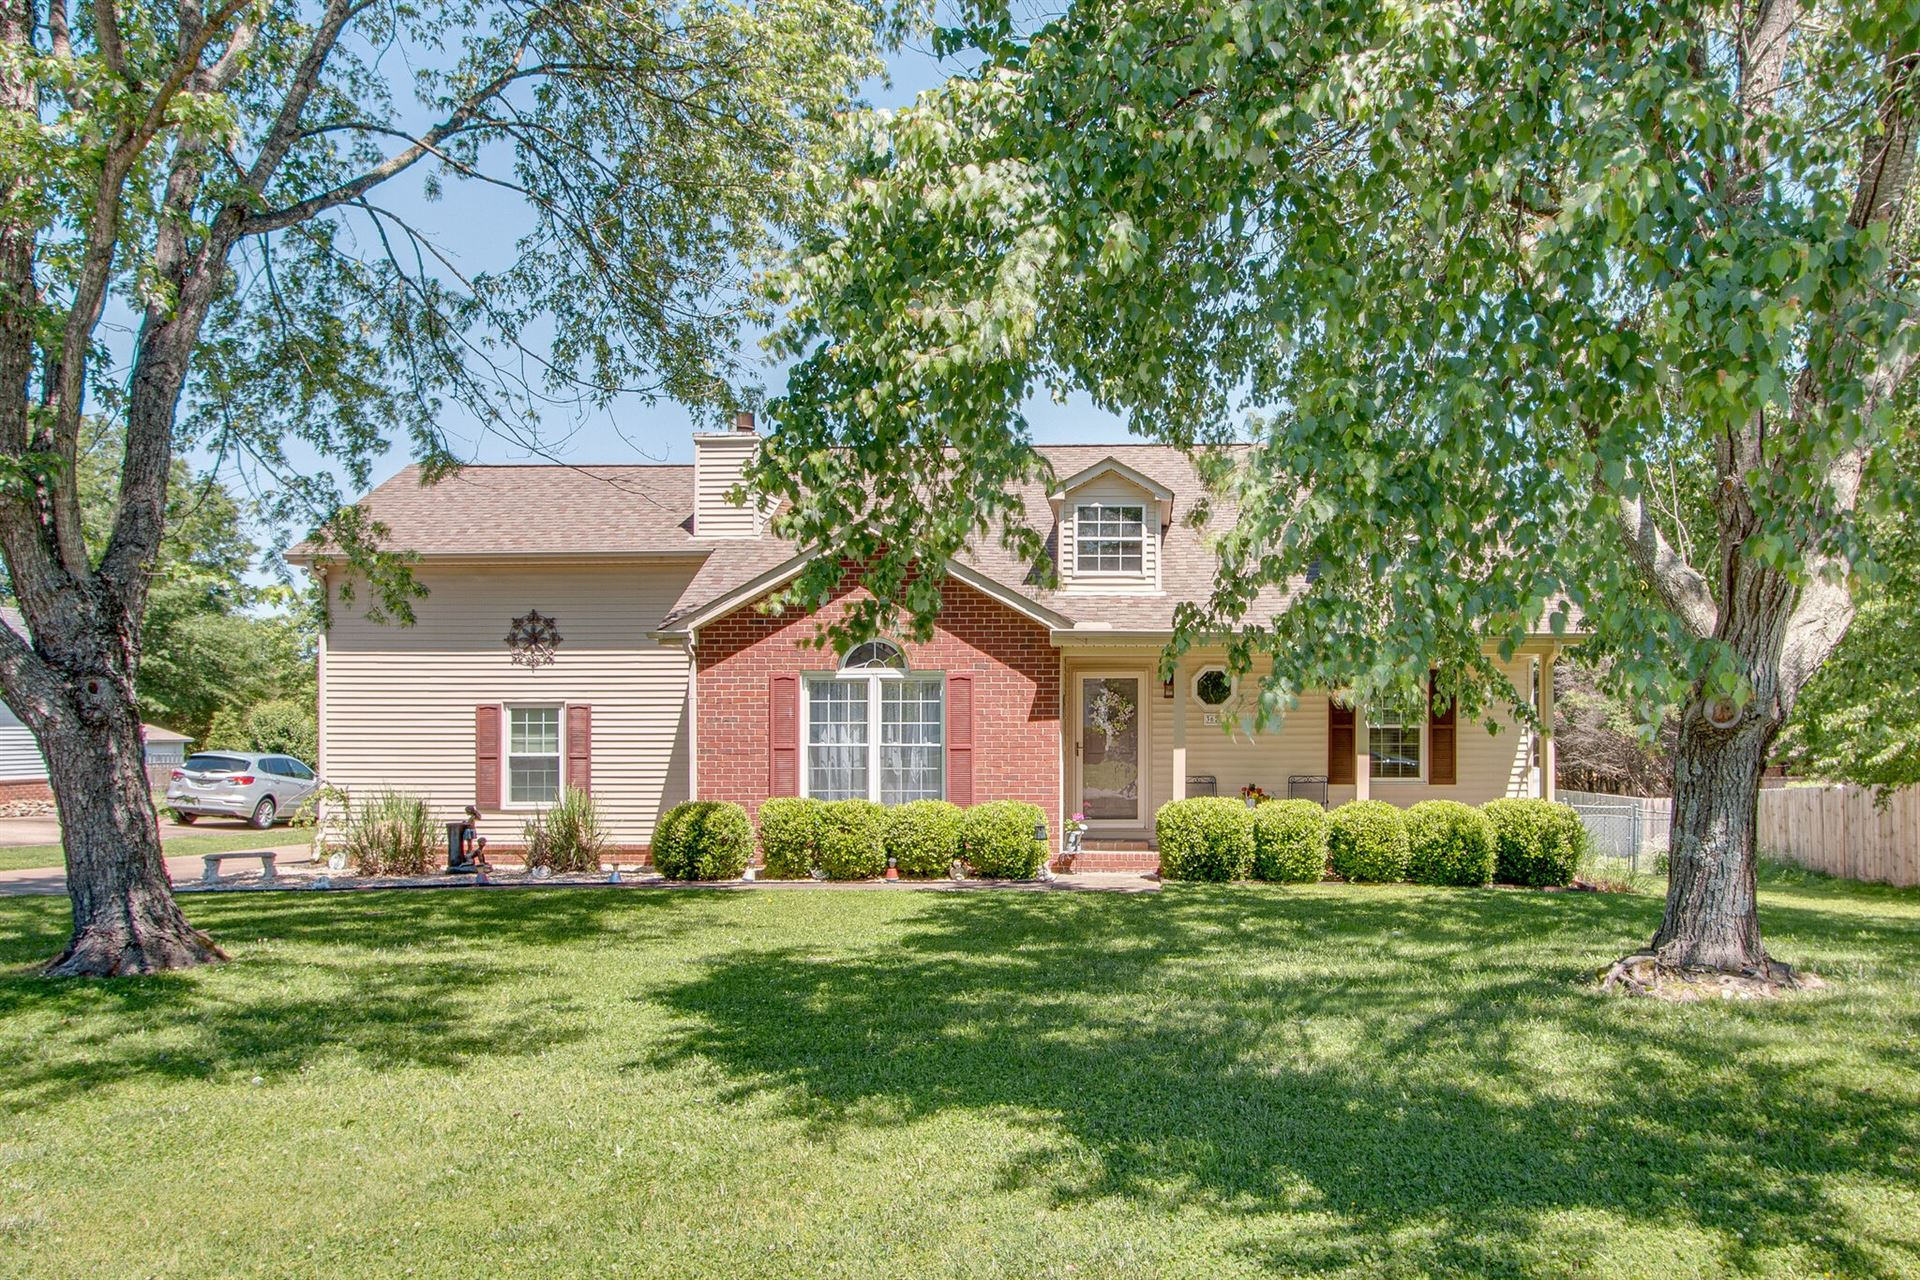 Photo of 3624 Rutherford Dr, Spring Hill, TN 37174 (MLS # 2251207)